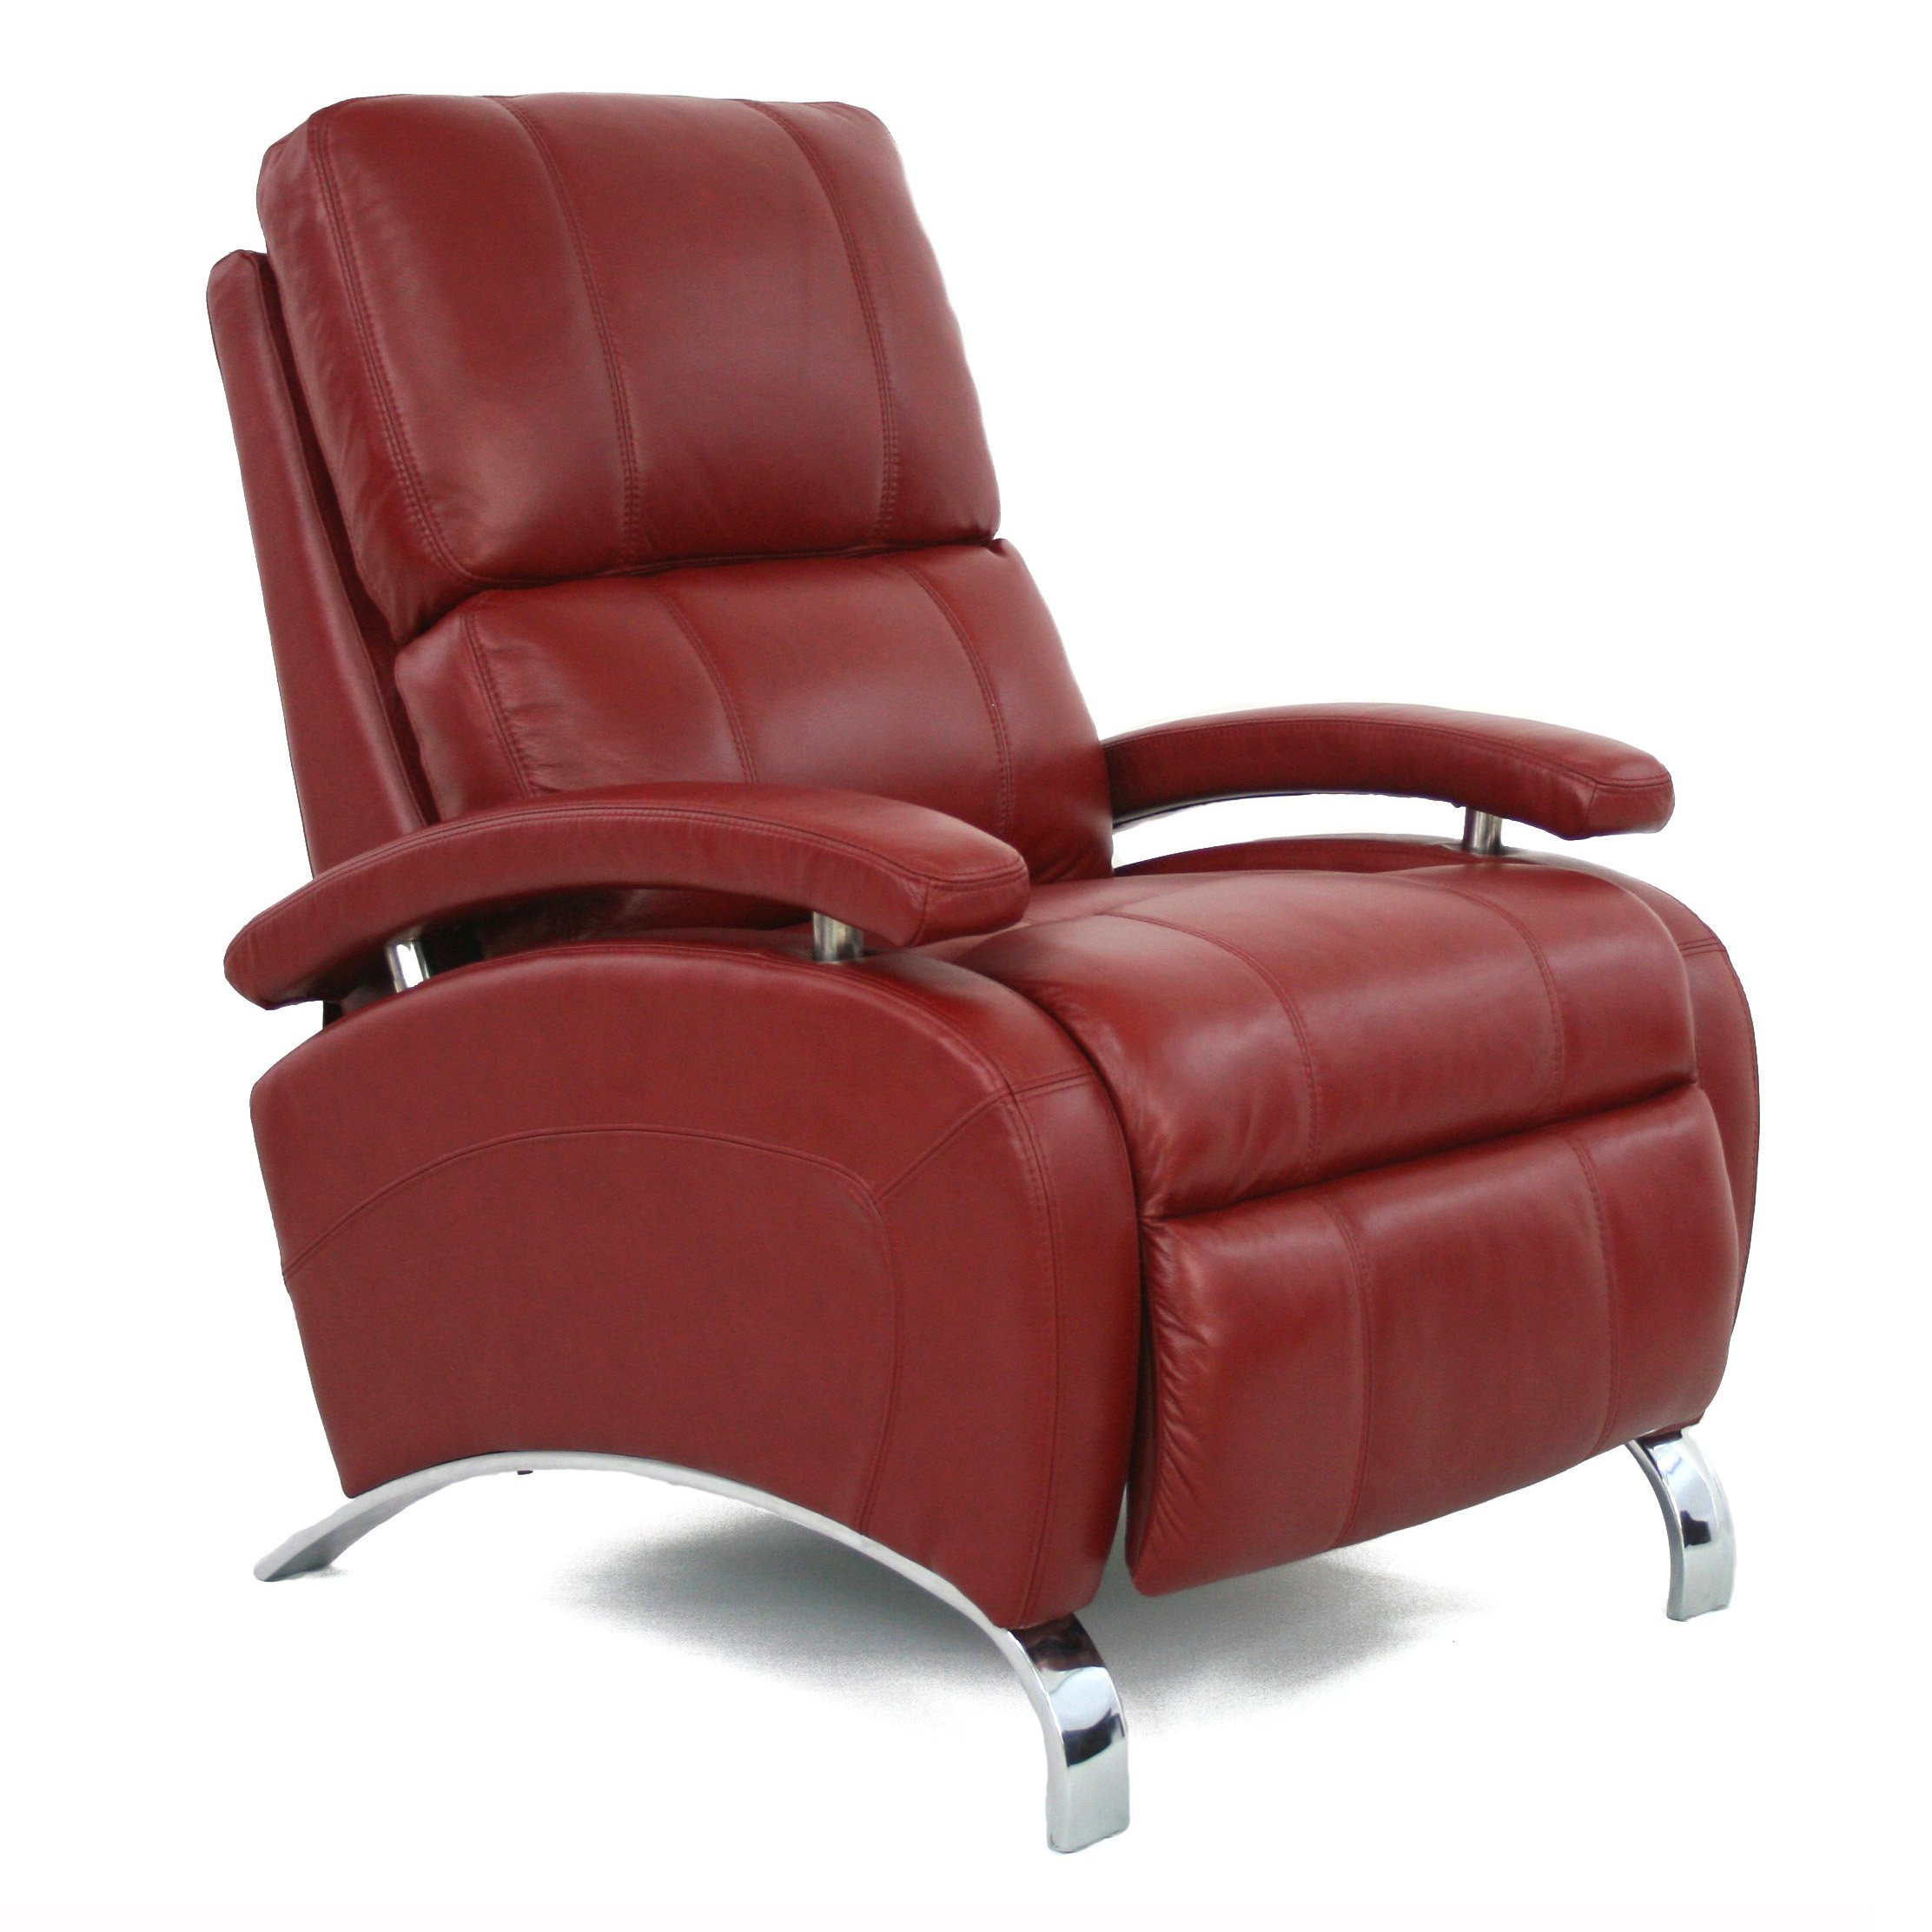 red recliner chairs chair for office work barcalounger oracle ii leather push back walmart com